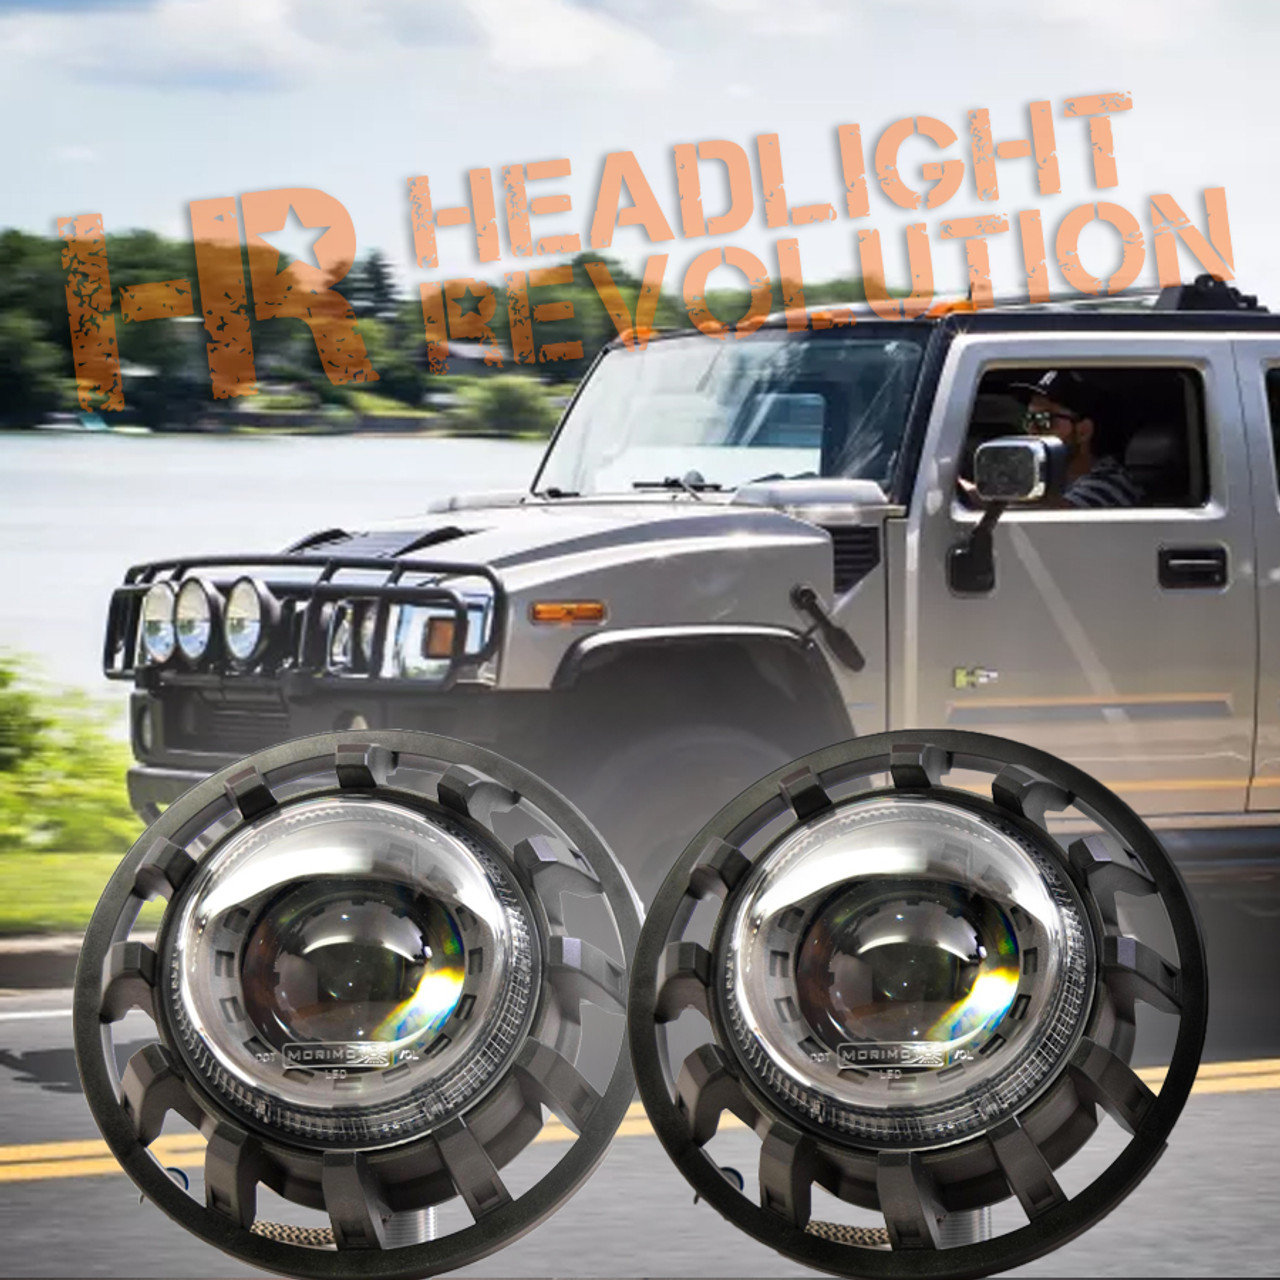 morimoto 2002 2009 hummer h2 super7 bi led headlight kit [ 900 x 900 Pixel ]